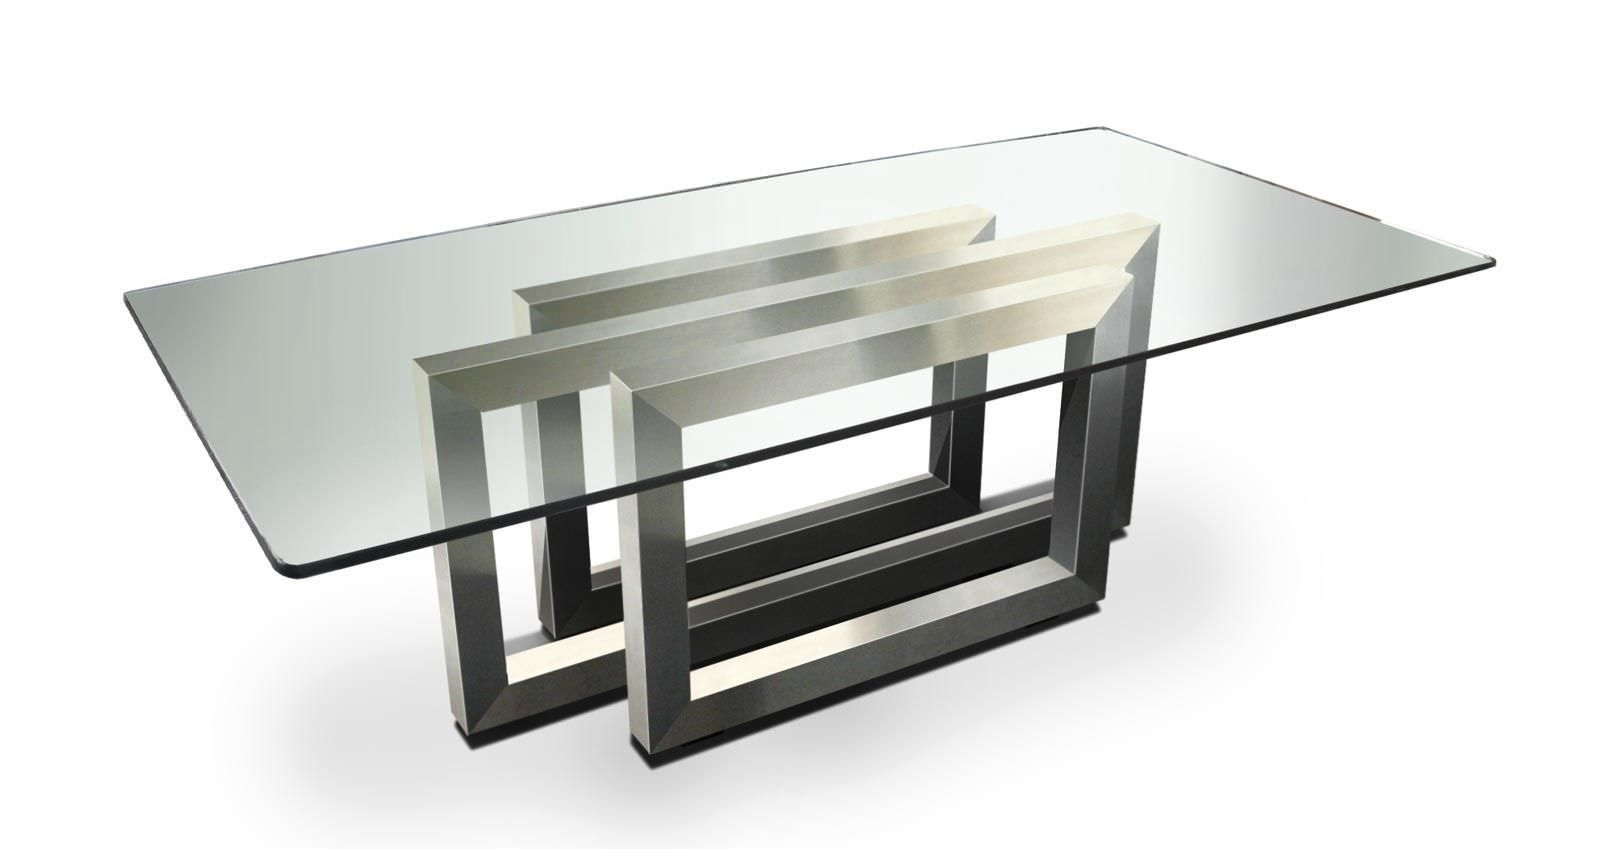 Mesa rectangular de interior moderna de cristal for Cristal para mesa rectangular